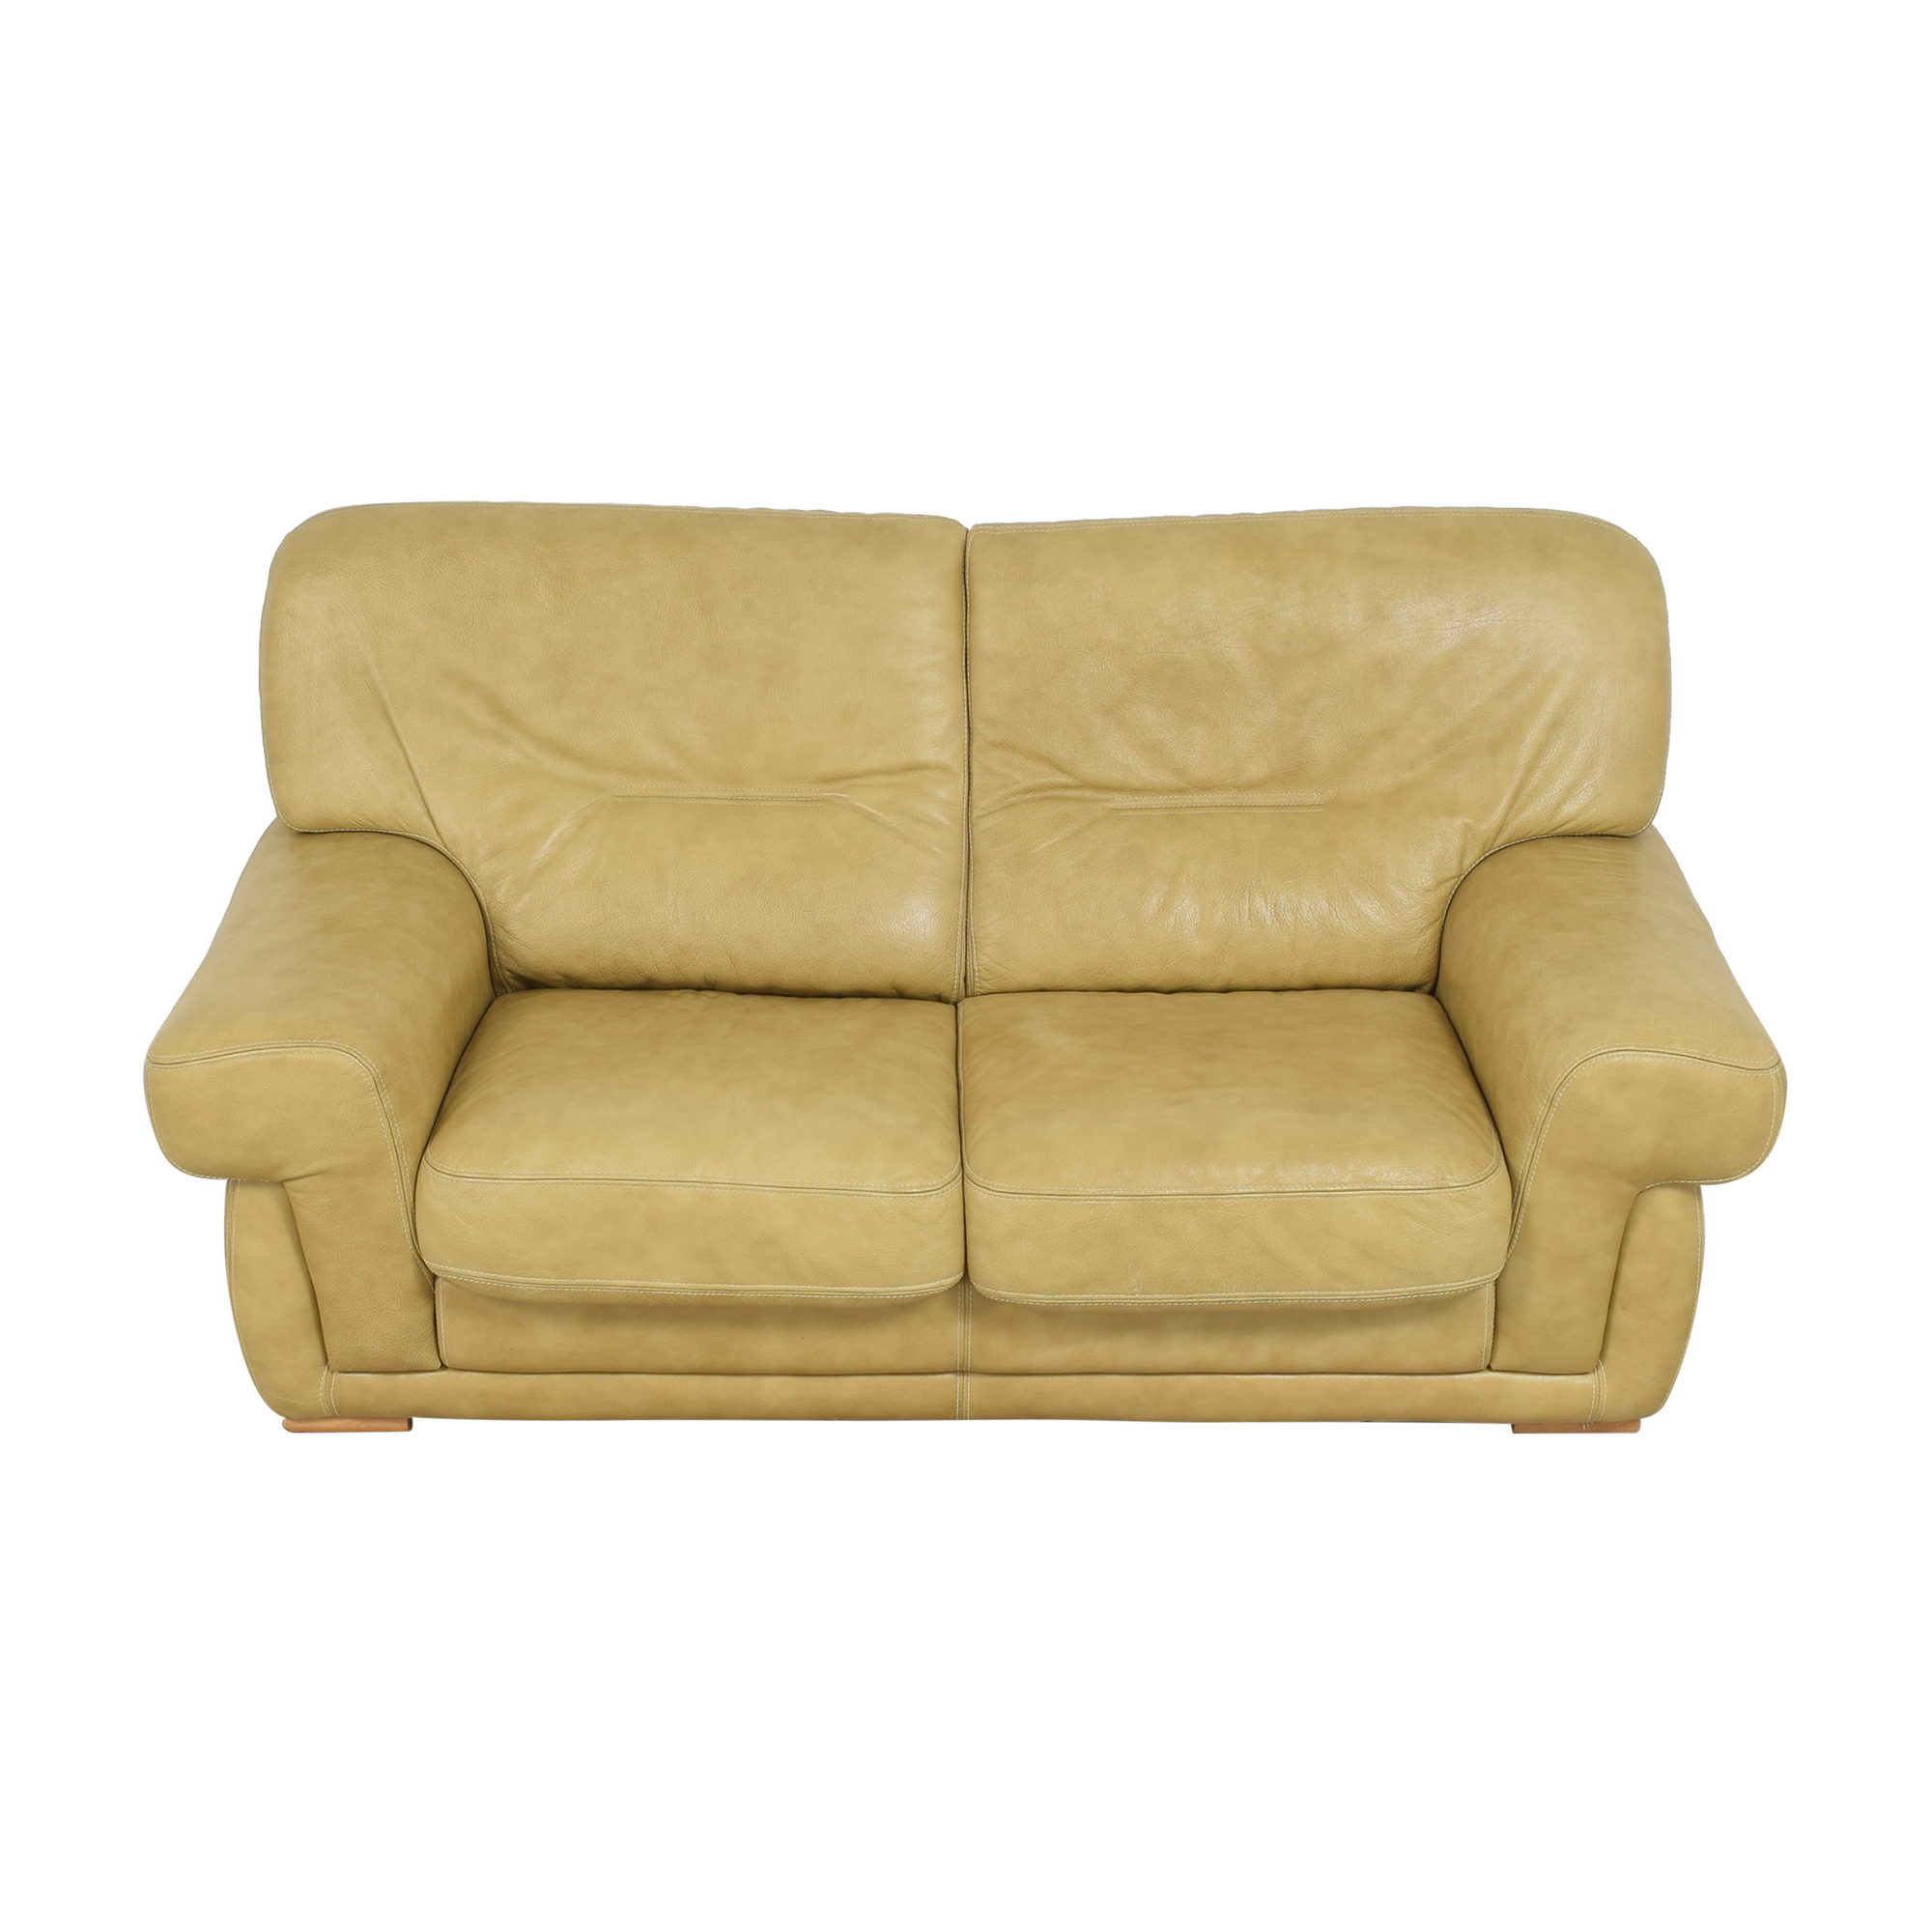 Formitalia Formitalia DIDI Collection Loveseat ma